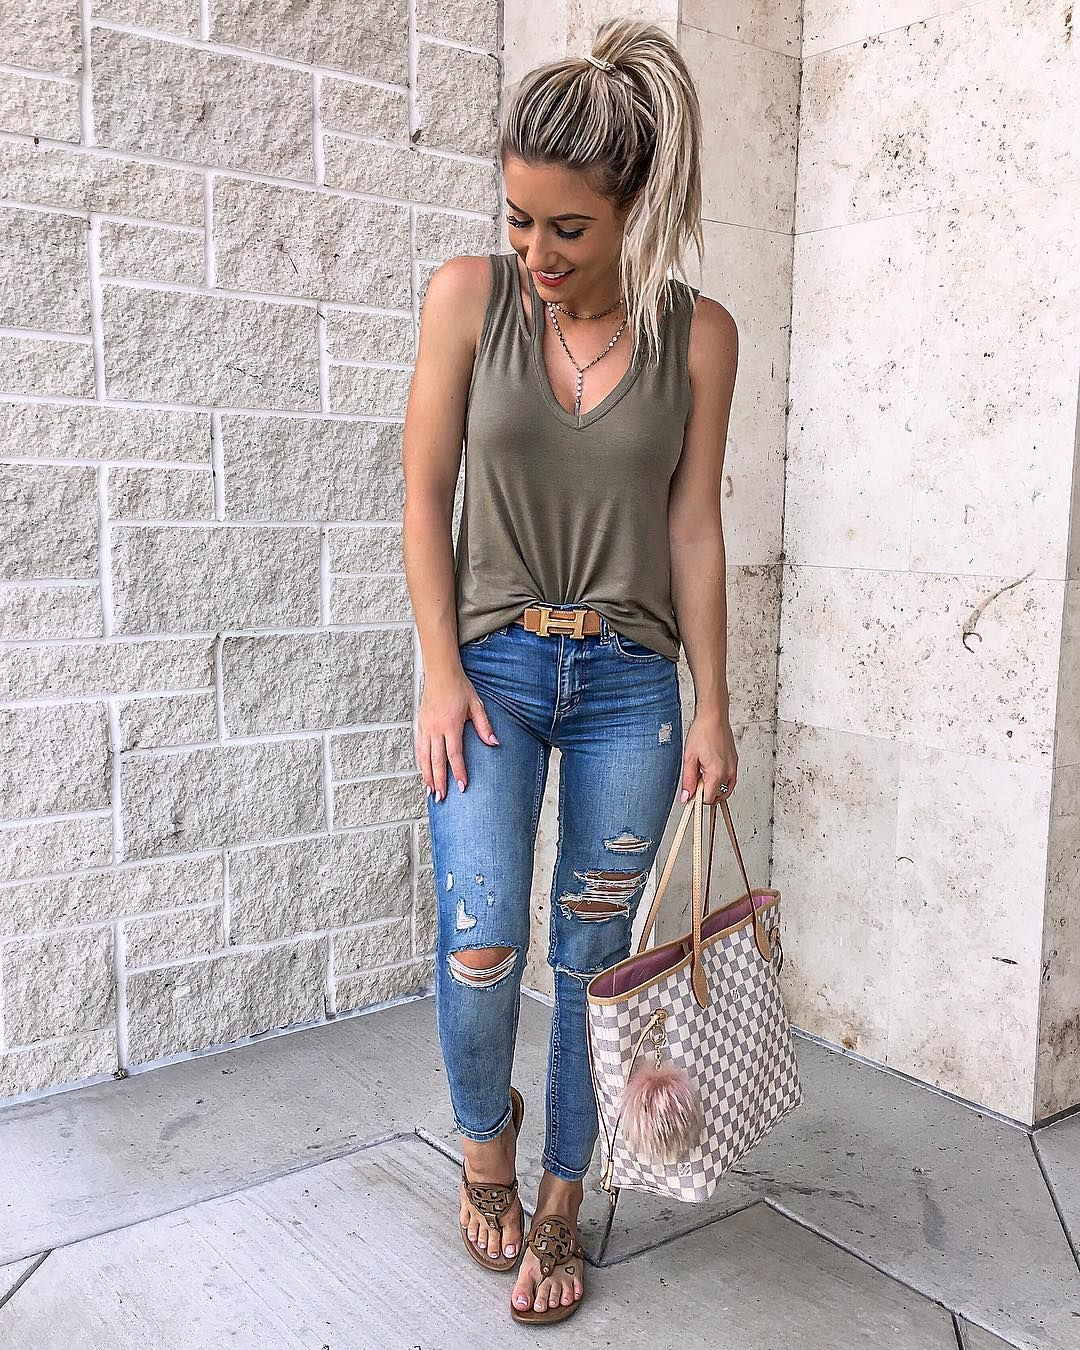 Cute casual outfit. Olive green tank and jeans | Cute ...